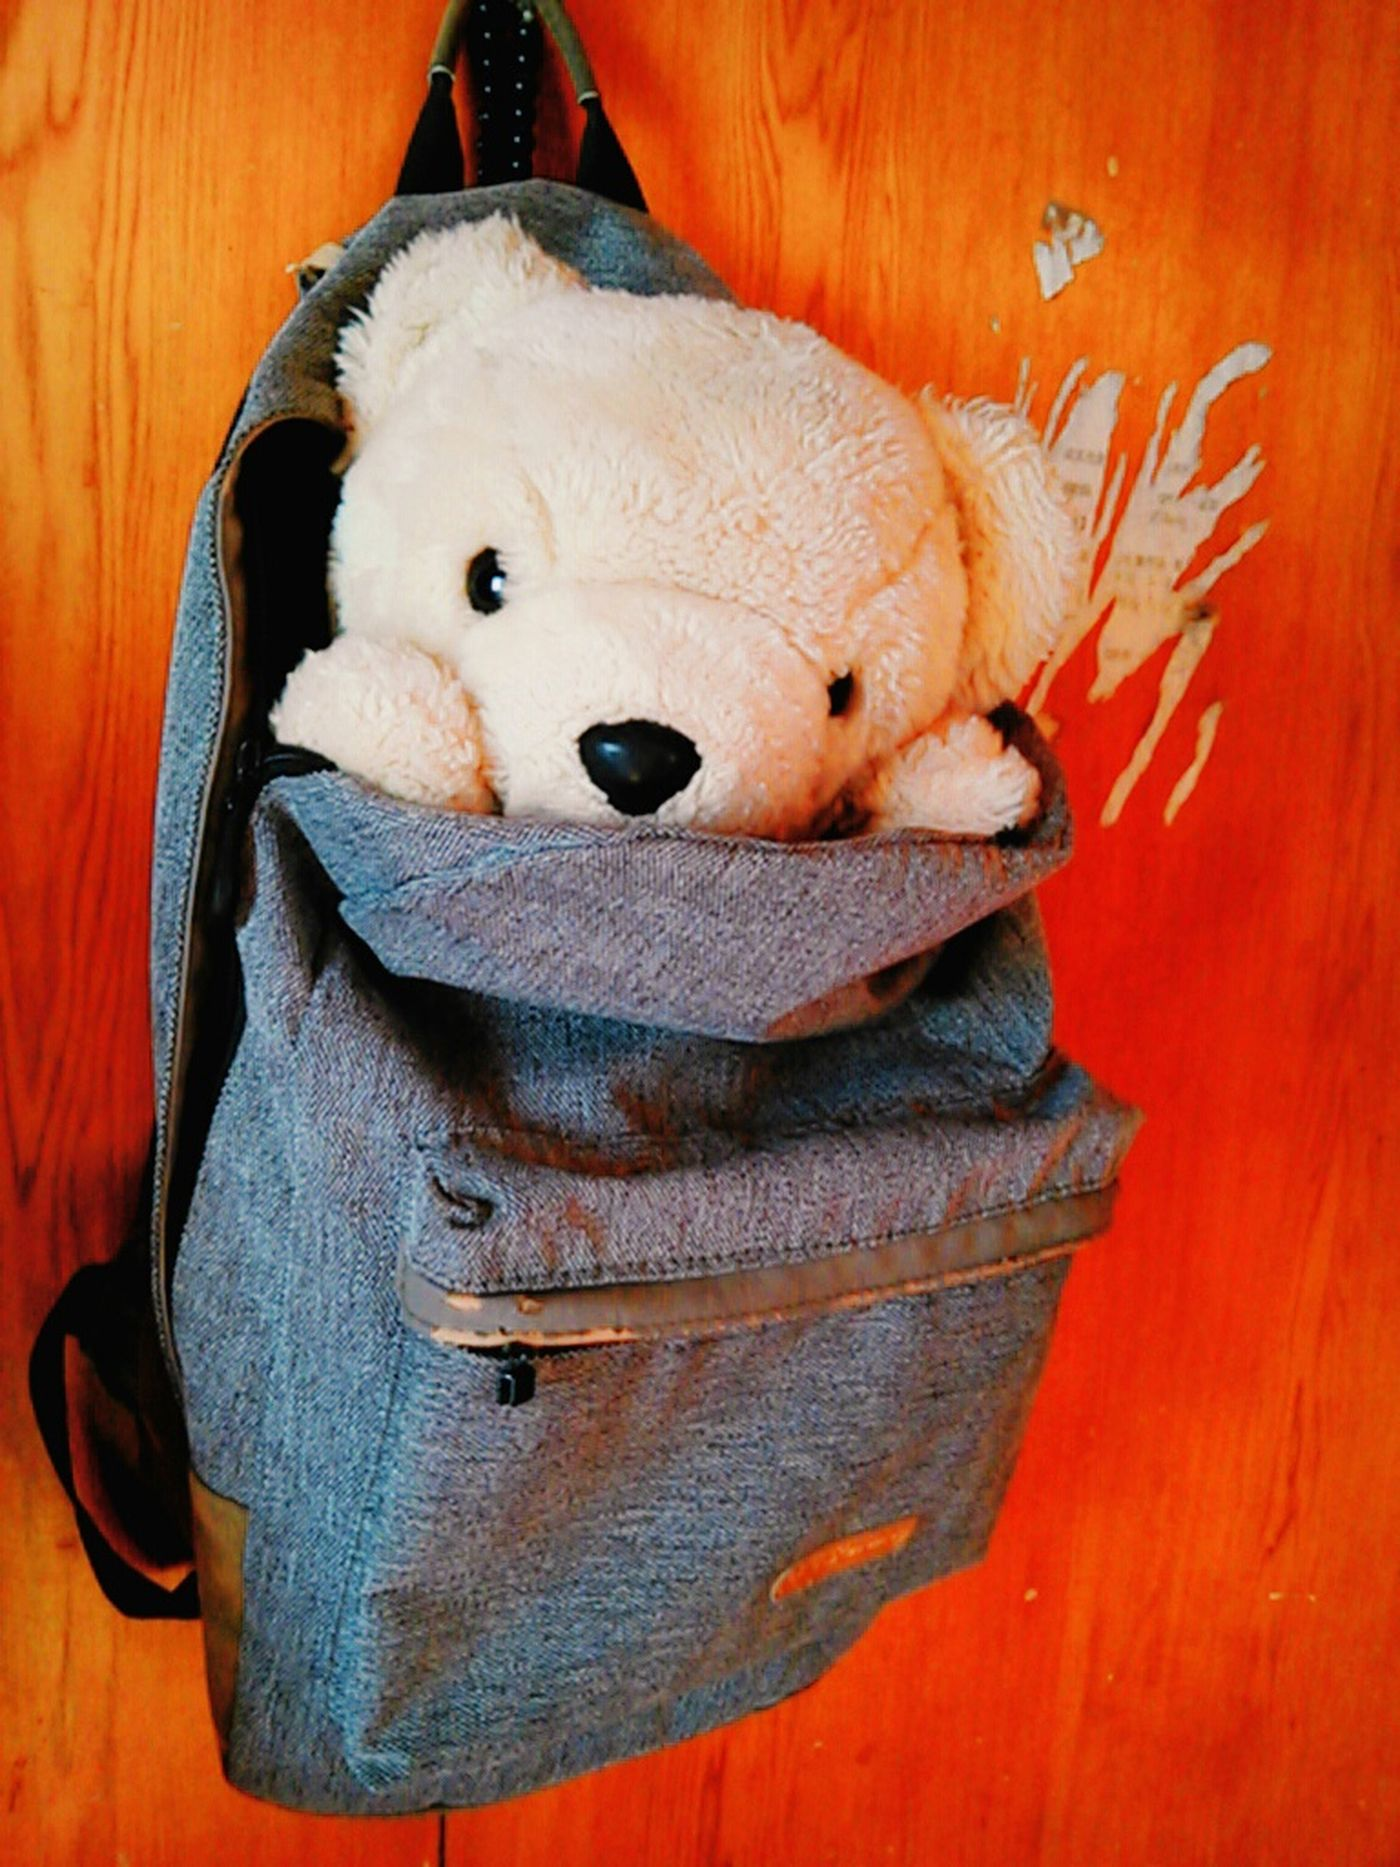 a backpack that can bring me a journey is a good backpack. A_Ruang Bear Cute Doll Backpack Journey Slemder